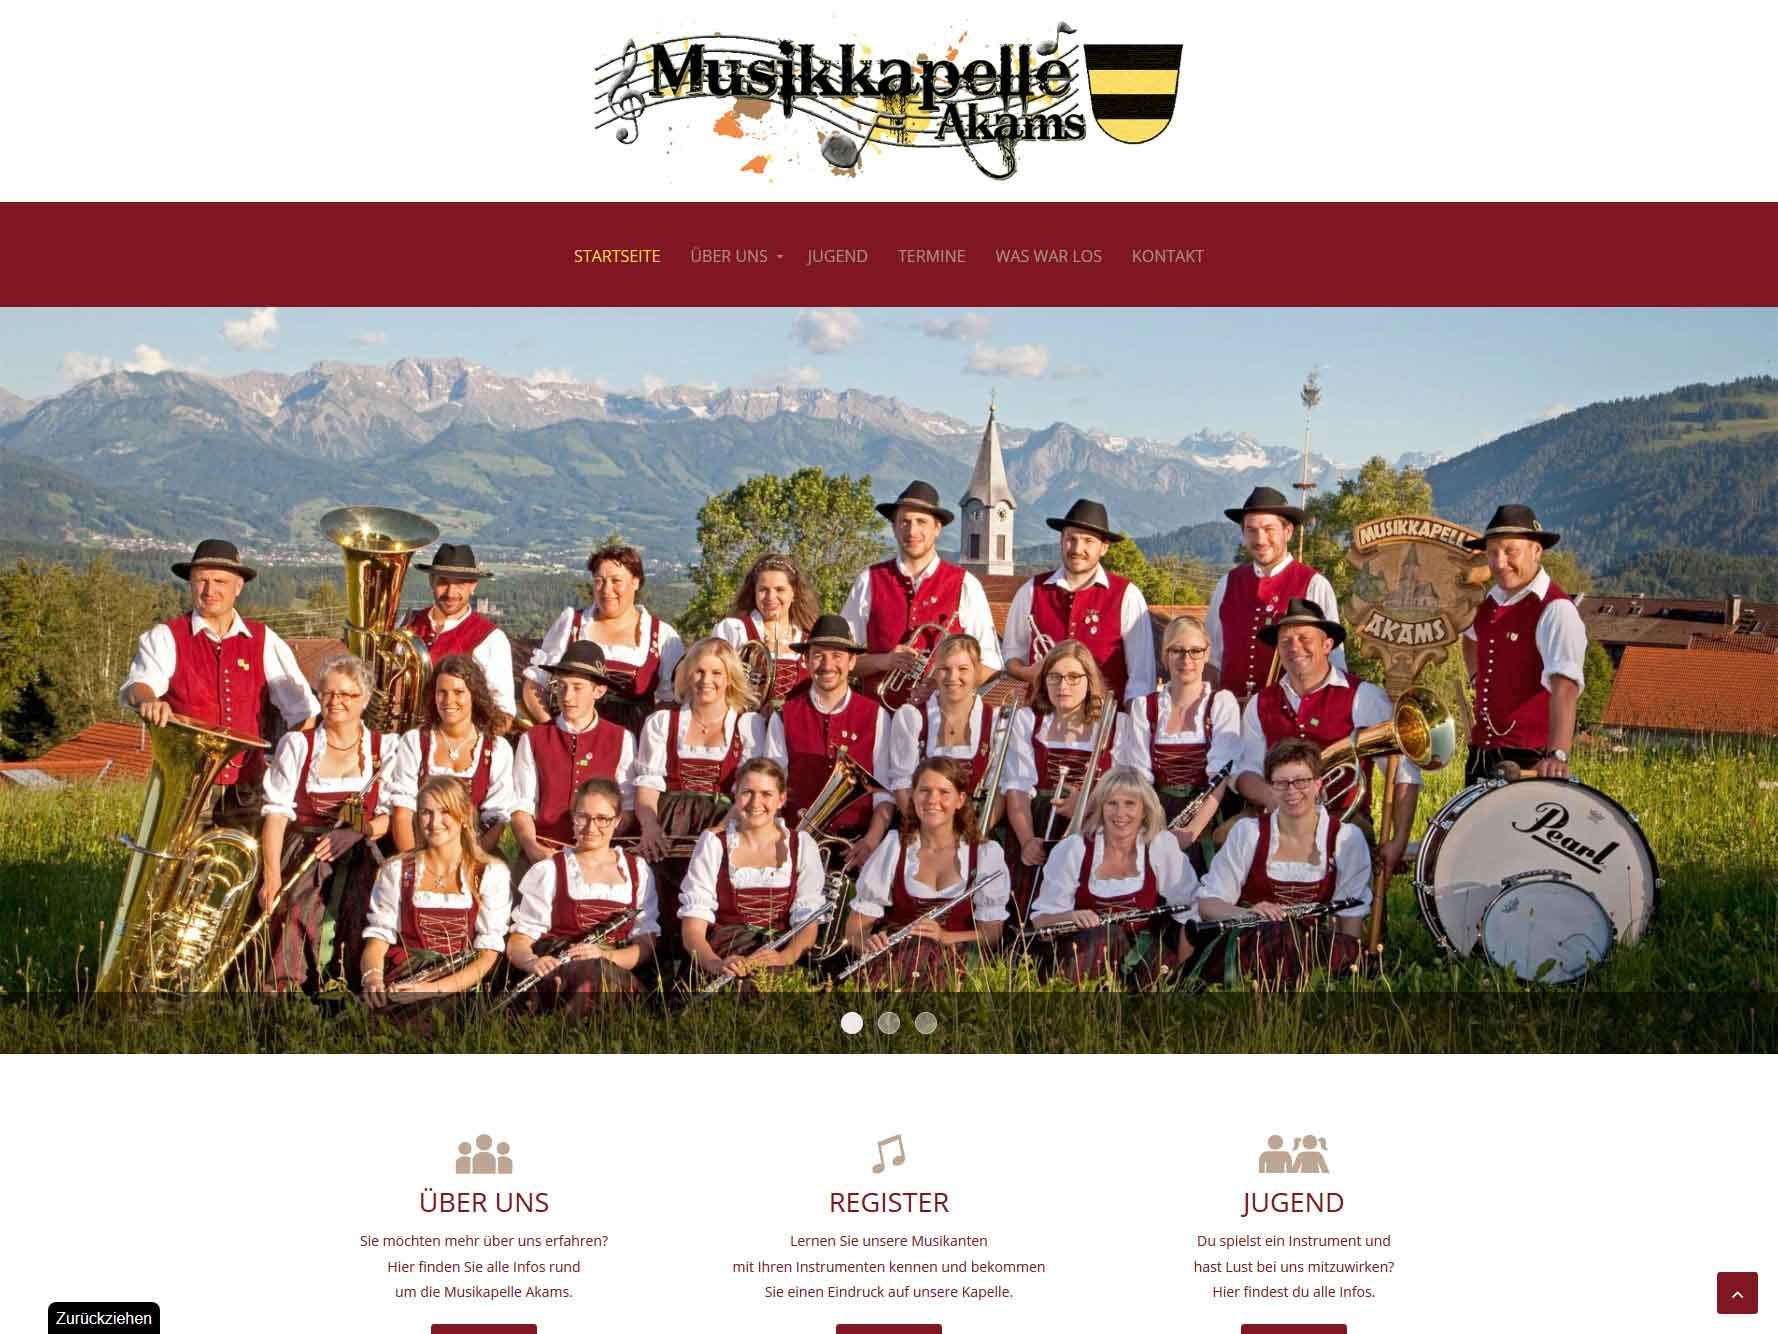 Musikkapelle Akams